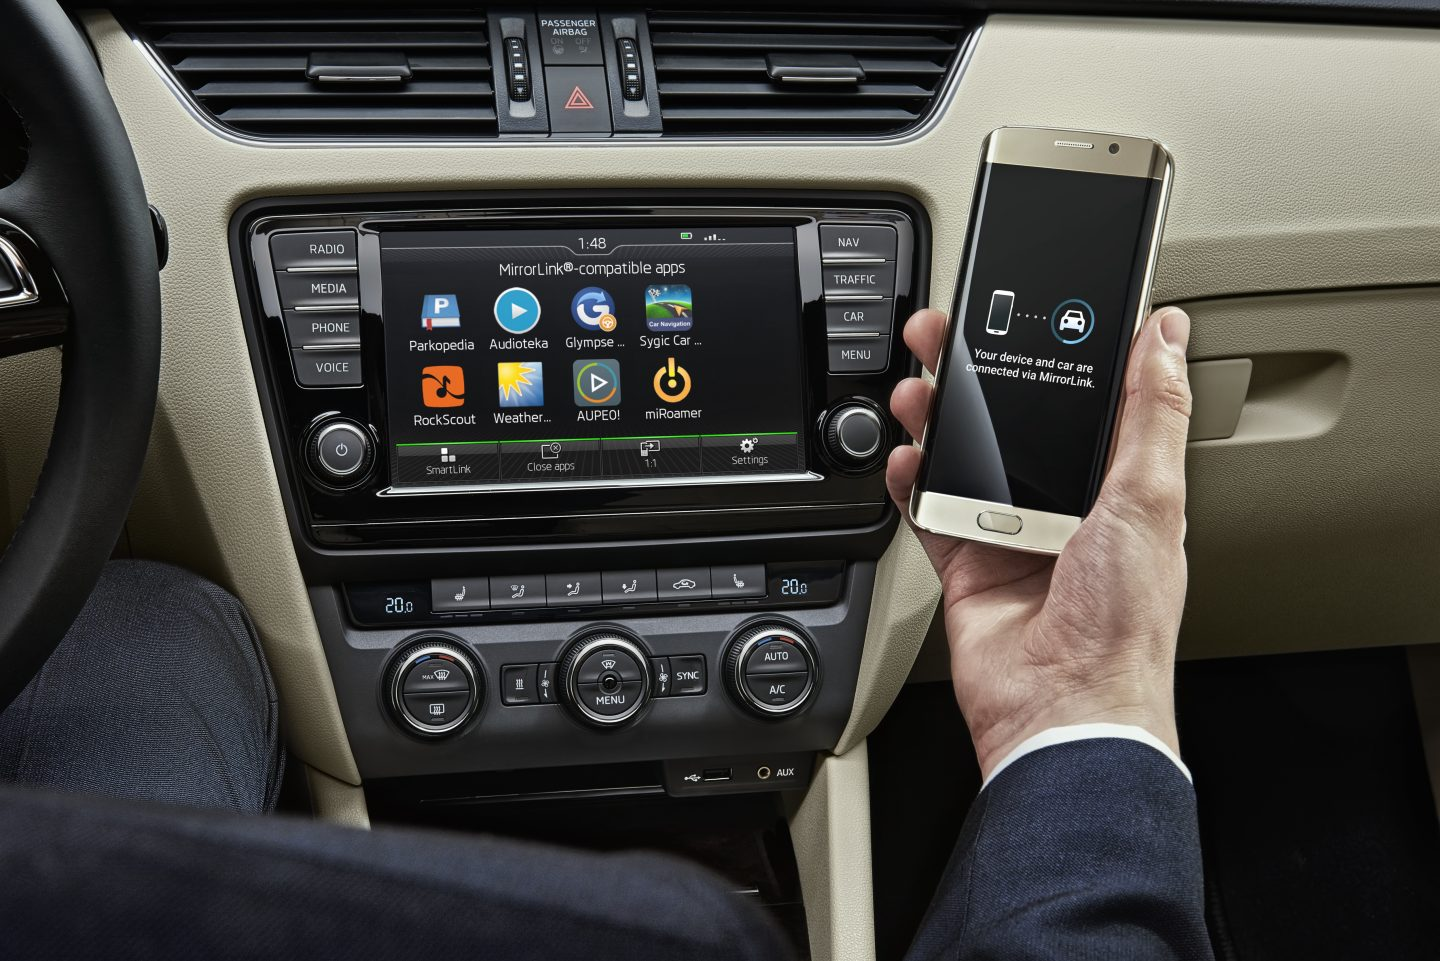 ŠKODA introduced the new Wireless MirrorLink technology at the Mobile World Congress (MWC), in Barcelona in February 2016. (Photo: ŠKODA AUTO a.s.)